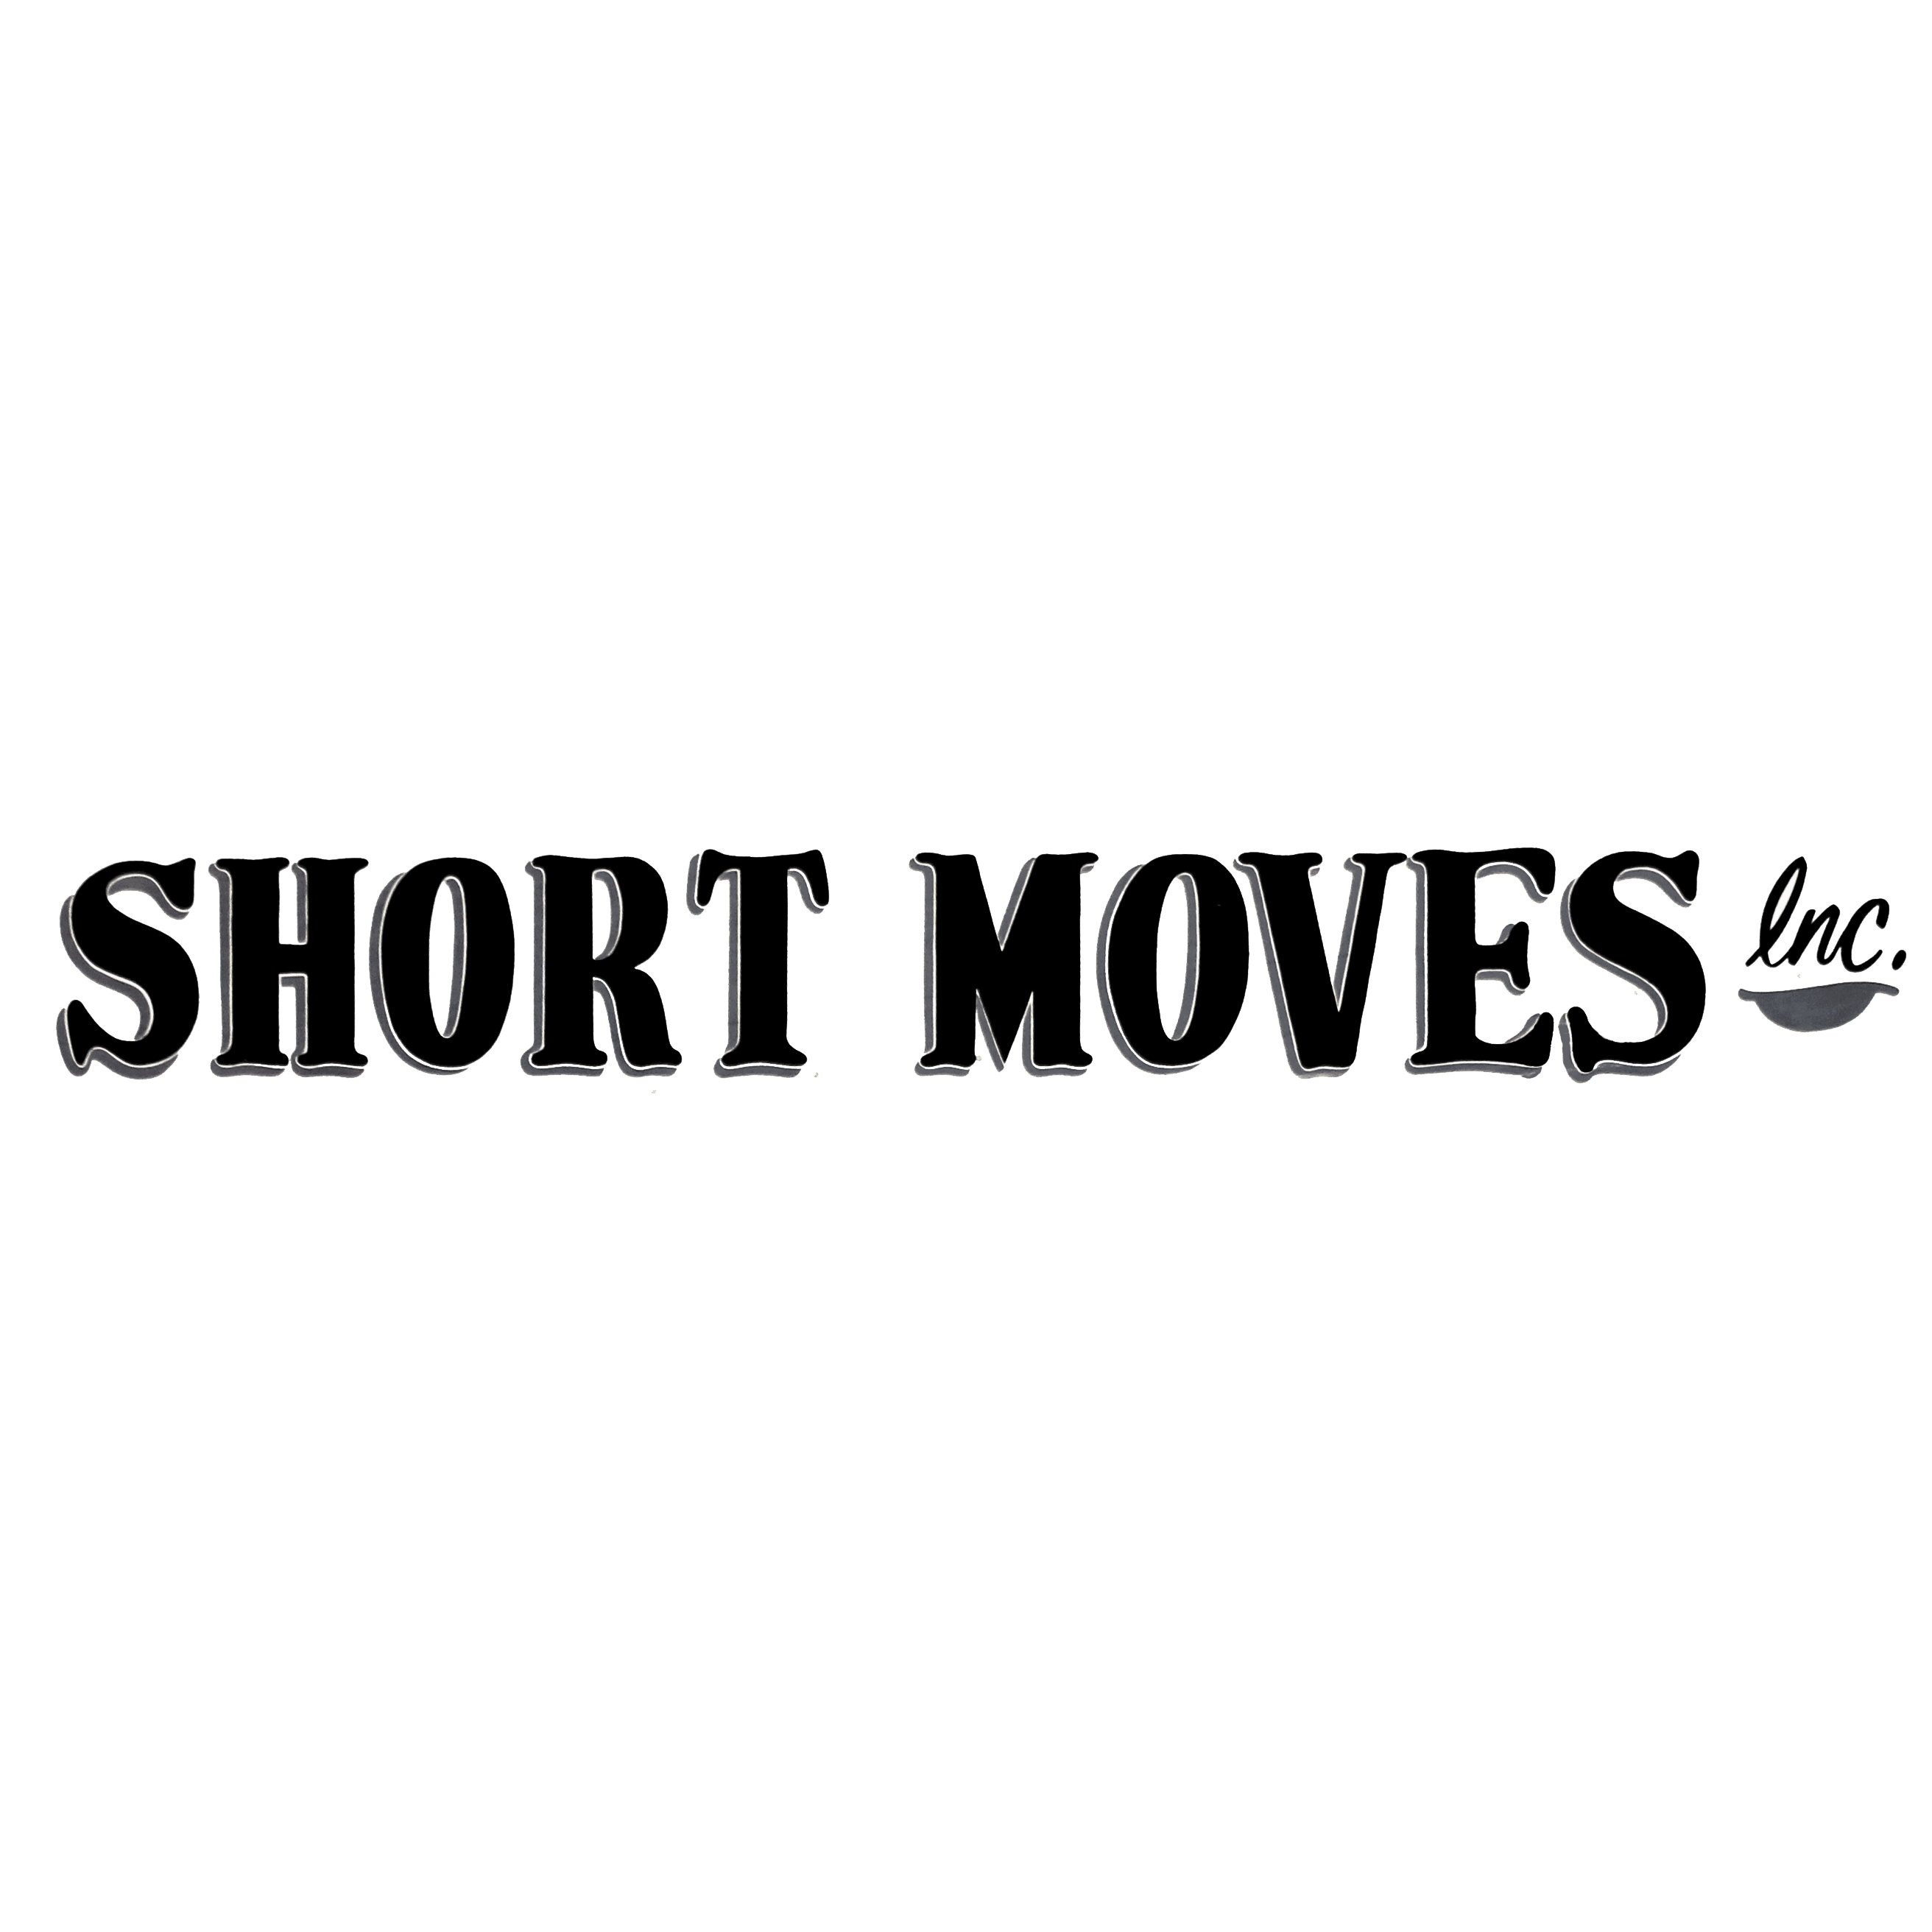 Short Moves Inc